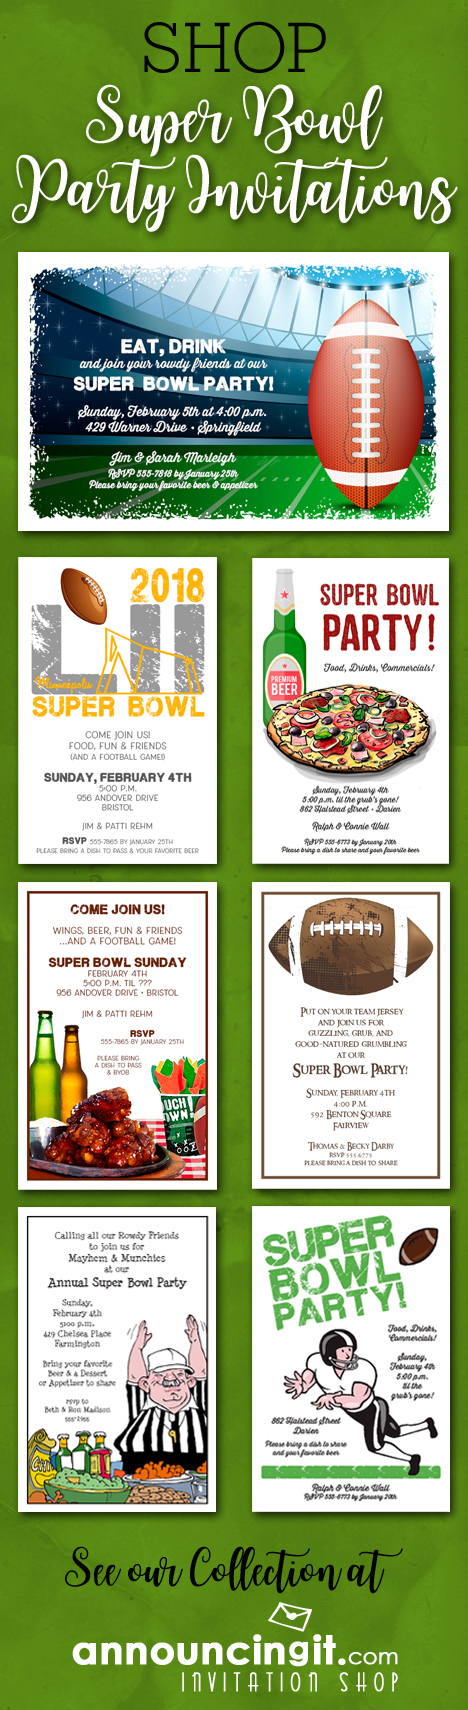 Shop Super Bowl Party Invitations at Announcingit.com